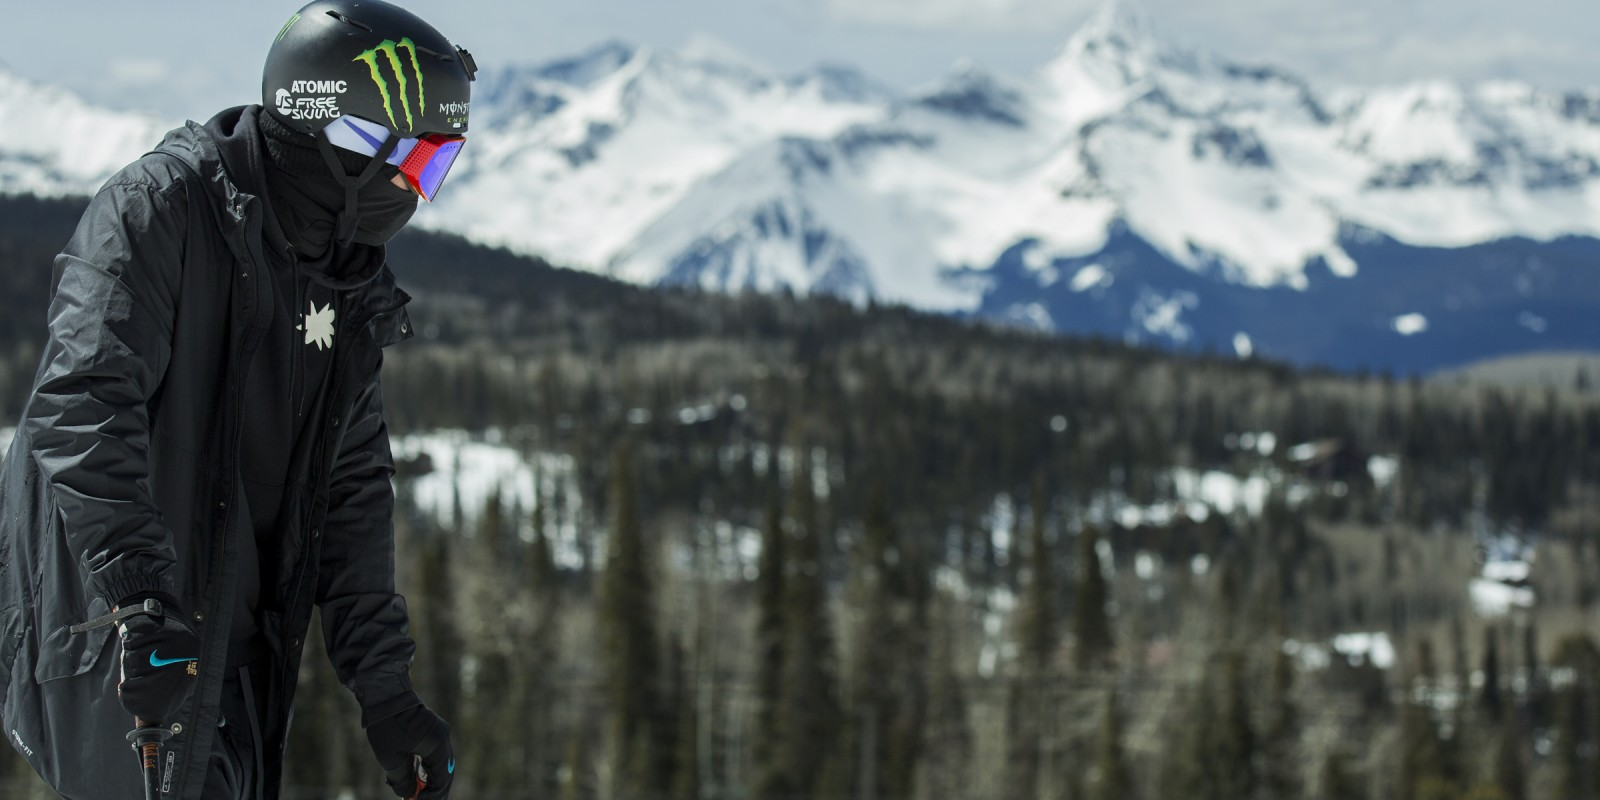 Gus Kenworthy at a private video shoot in Telluride, CO